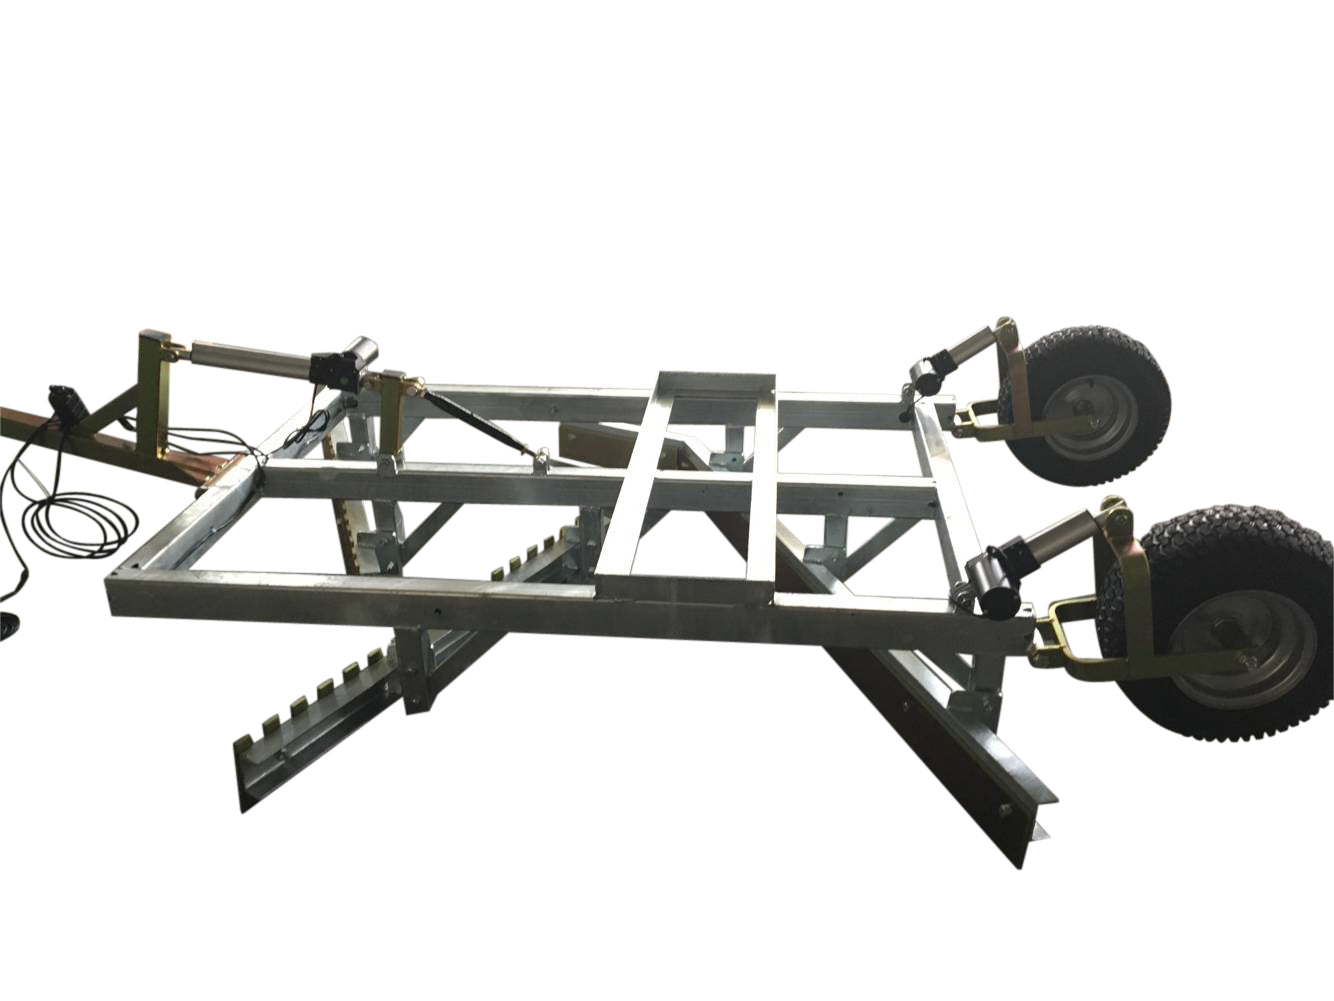 Bonnet grader 1.6m with flexible ball hitch and electrical hight adjustment